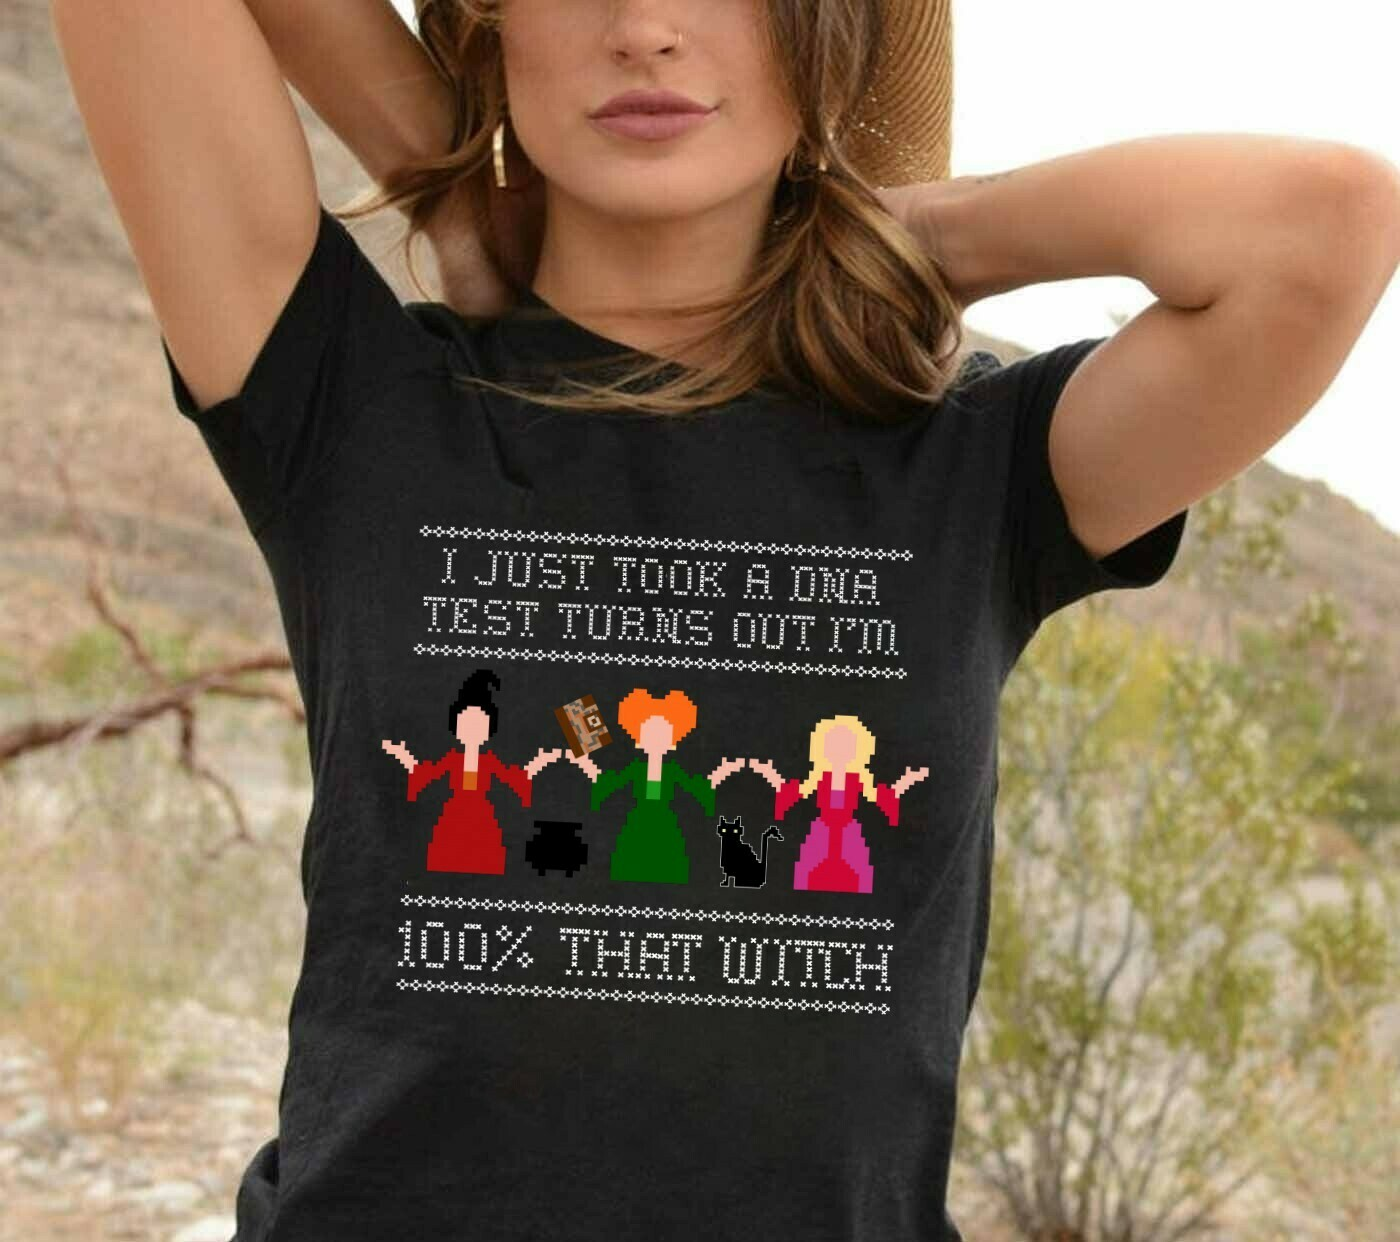 Sanderson Sisters Witch I Just Took A DNA Test Turns Out I'm 100% That Witch Bad Girls Have More Fun Walt Disney World Vacation T-Shirt Long Sleeve Sweatshirt Hoodie Jolly Family Gifts